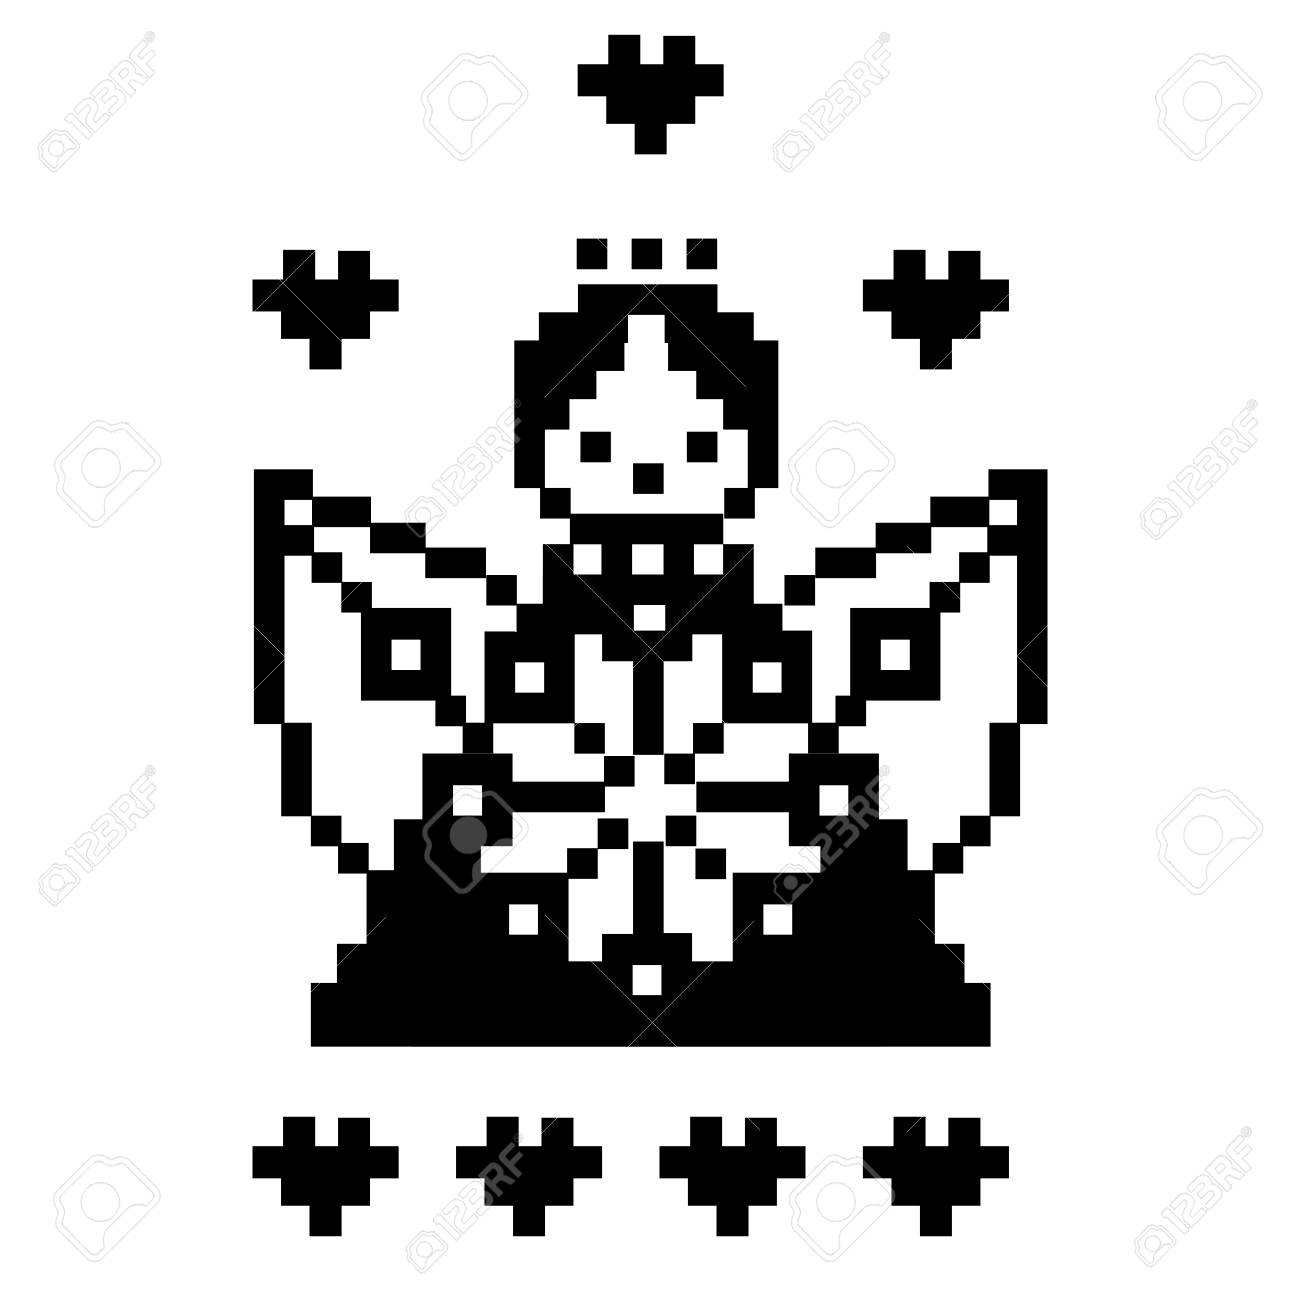 Angel Pixel Art Template For Cross Stitching Amour Angel Vector Royalty Free Cliparts Vectors And Stock Illustration Image 69775307